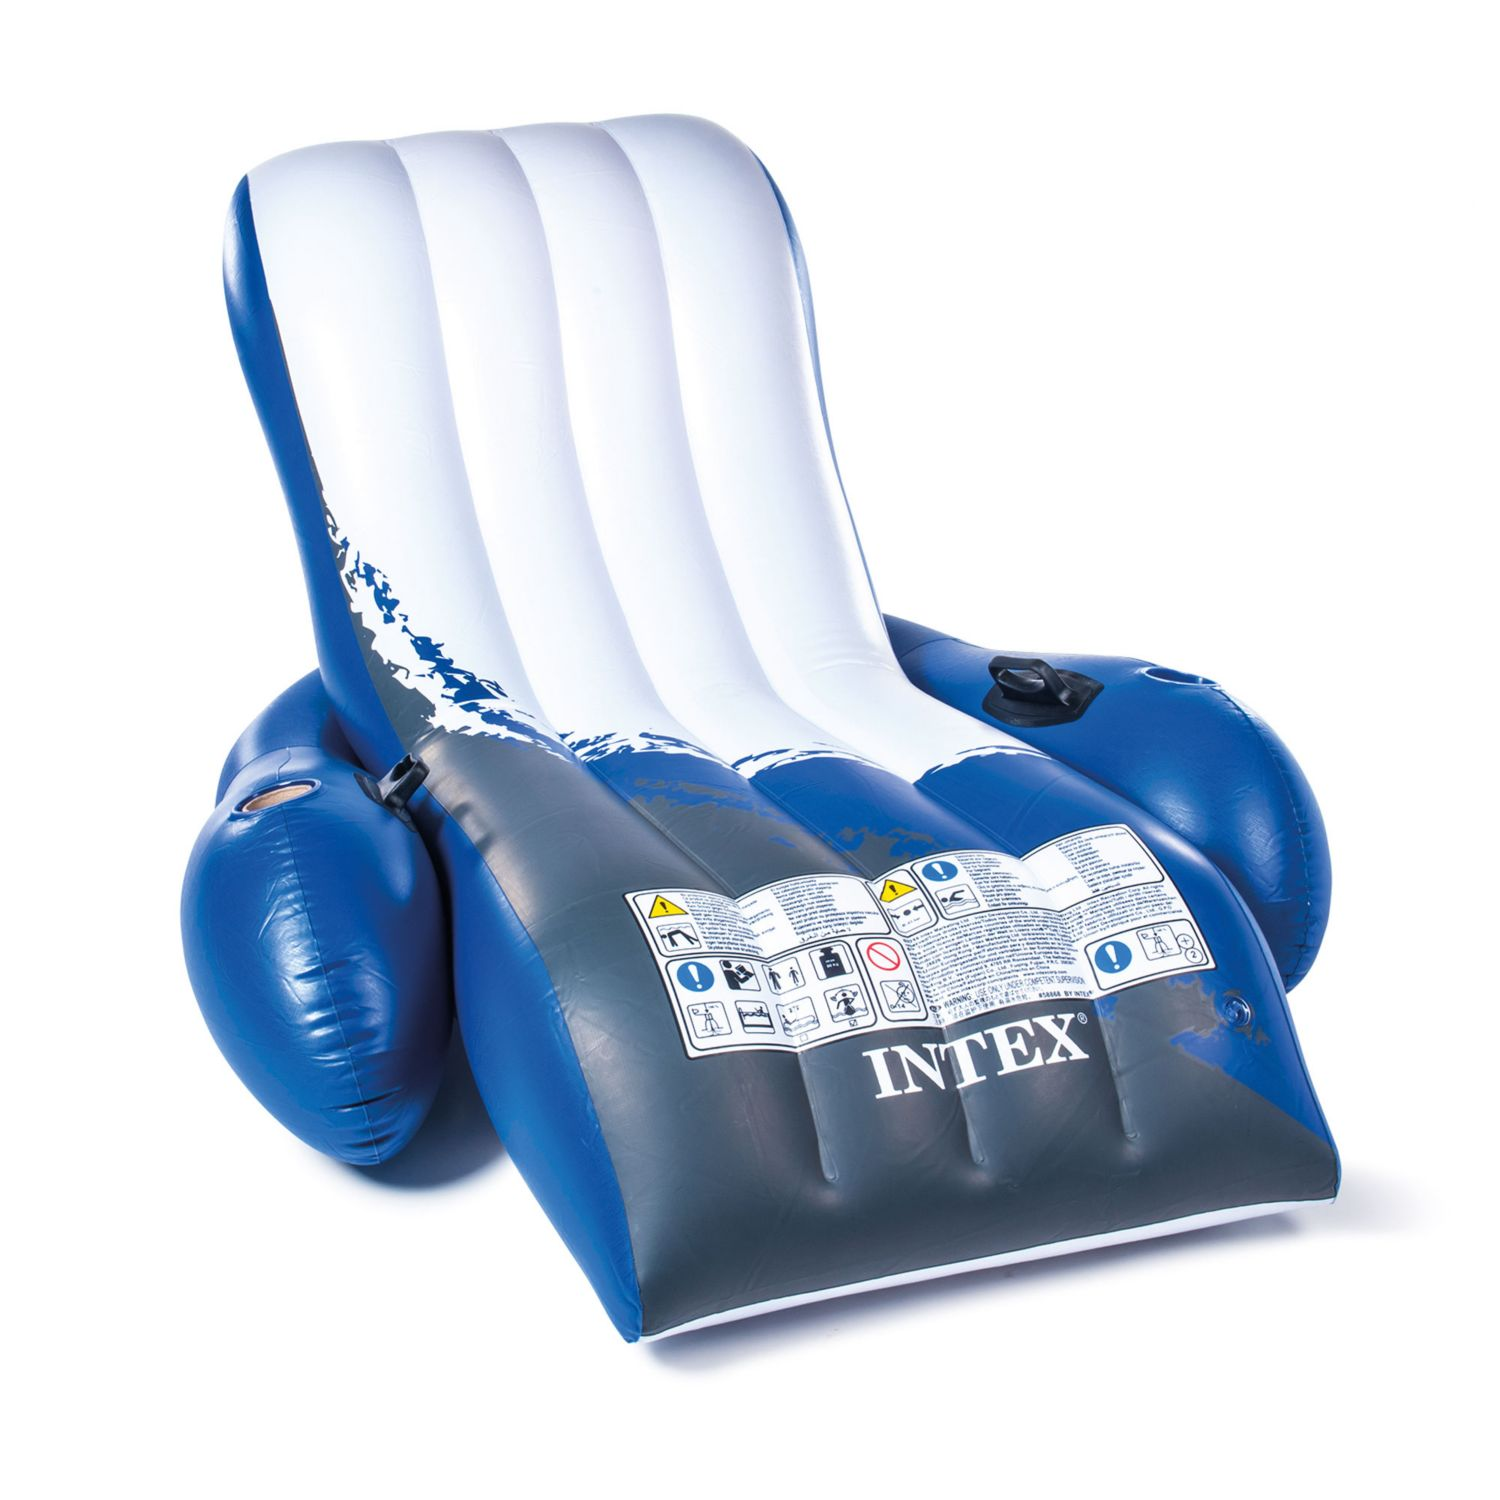 Intex Sitz Lounge Hofer